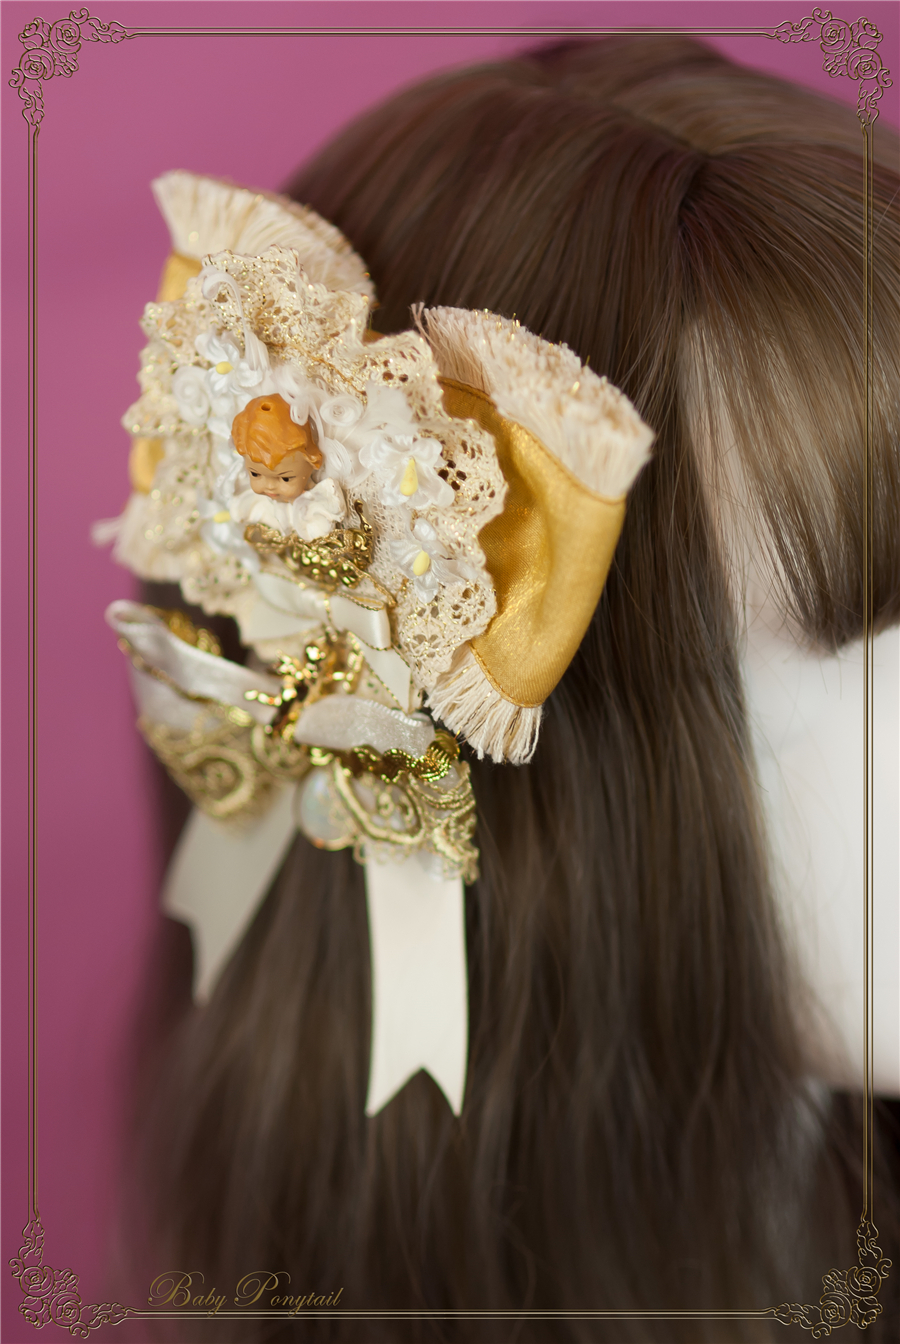 Baby Ponytail_Stock photo_Circus Princess_Angel Brooch_Yellow_ 04.jpg